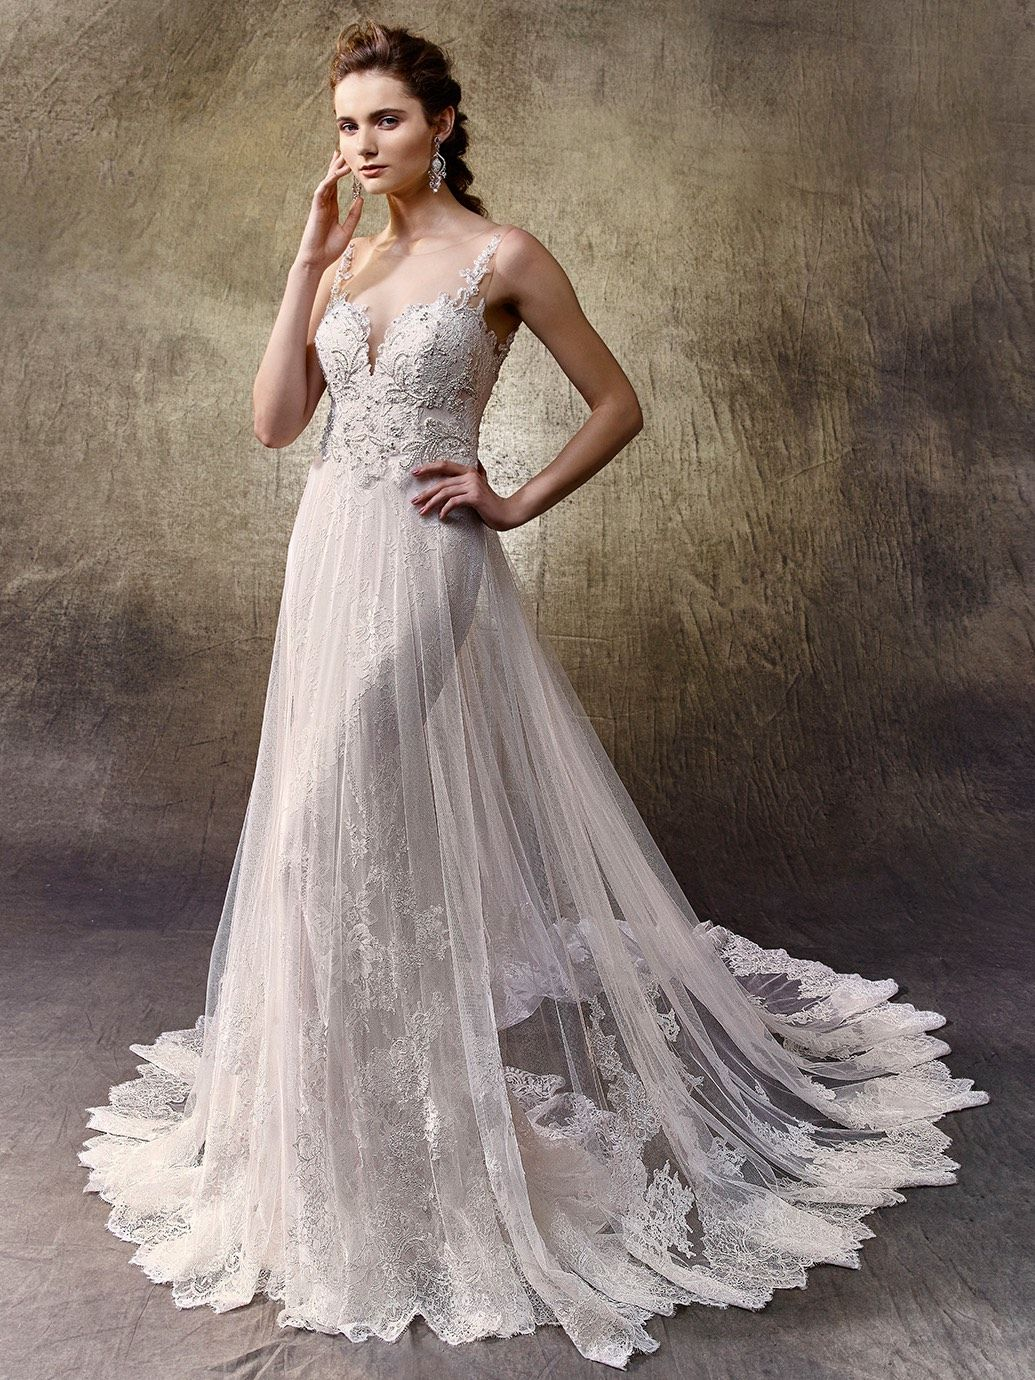 Inventory dress available at bride to be couture